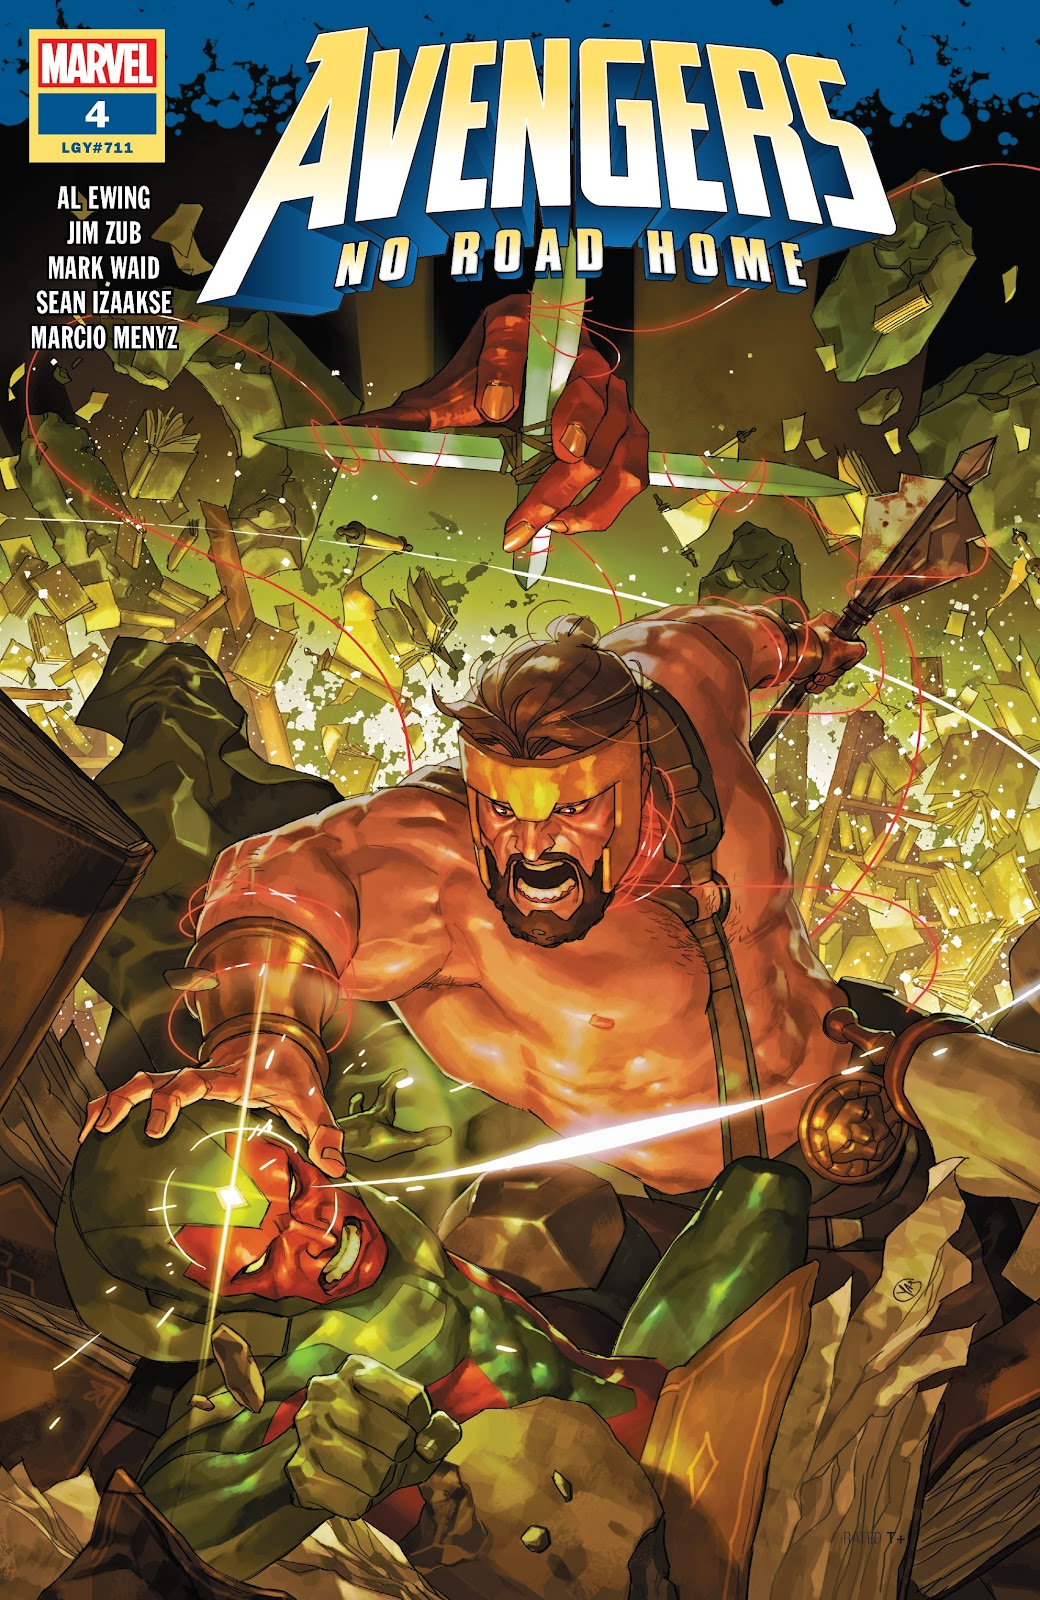 Read online Avengers No Road Home comic -  Issue #4 - 1